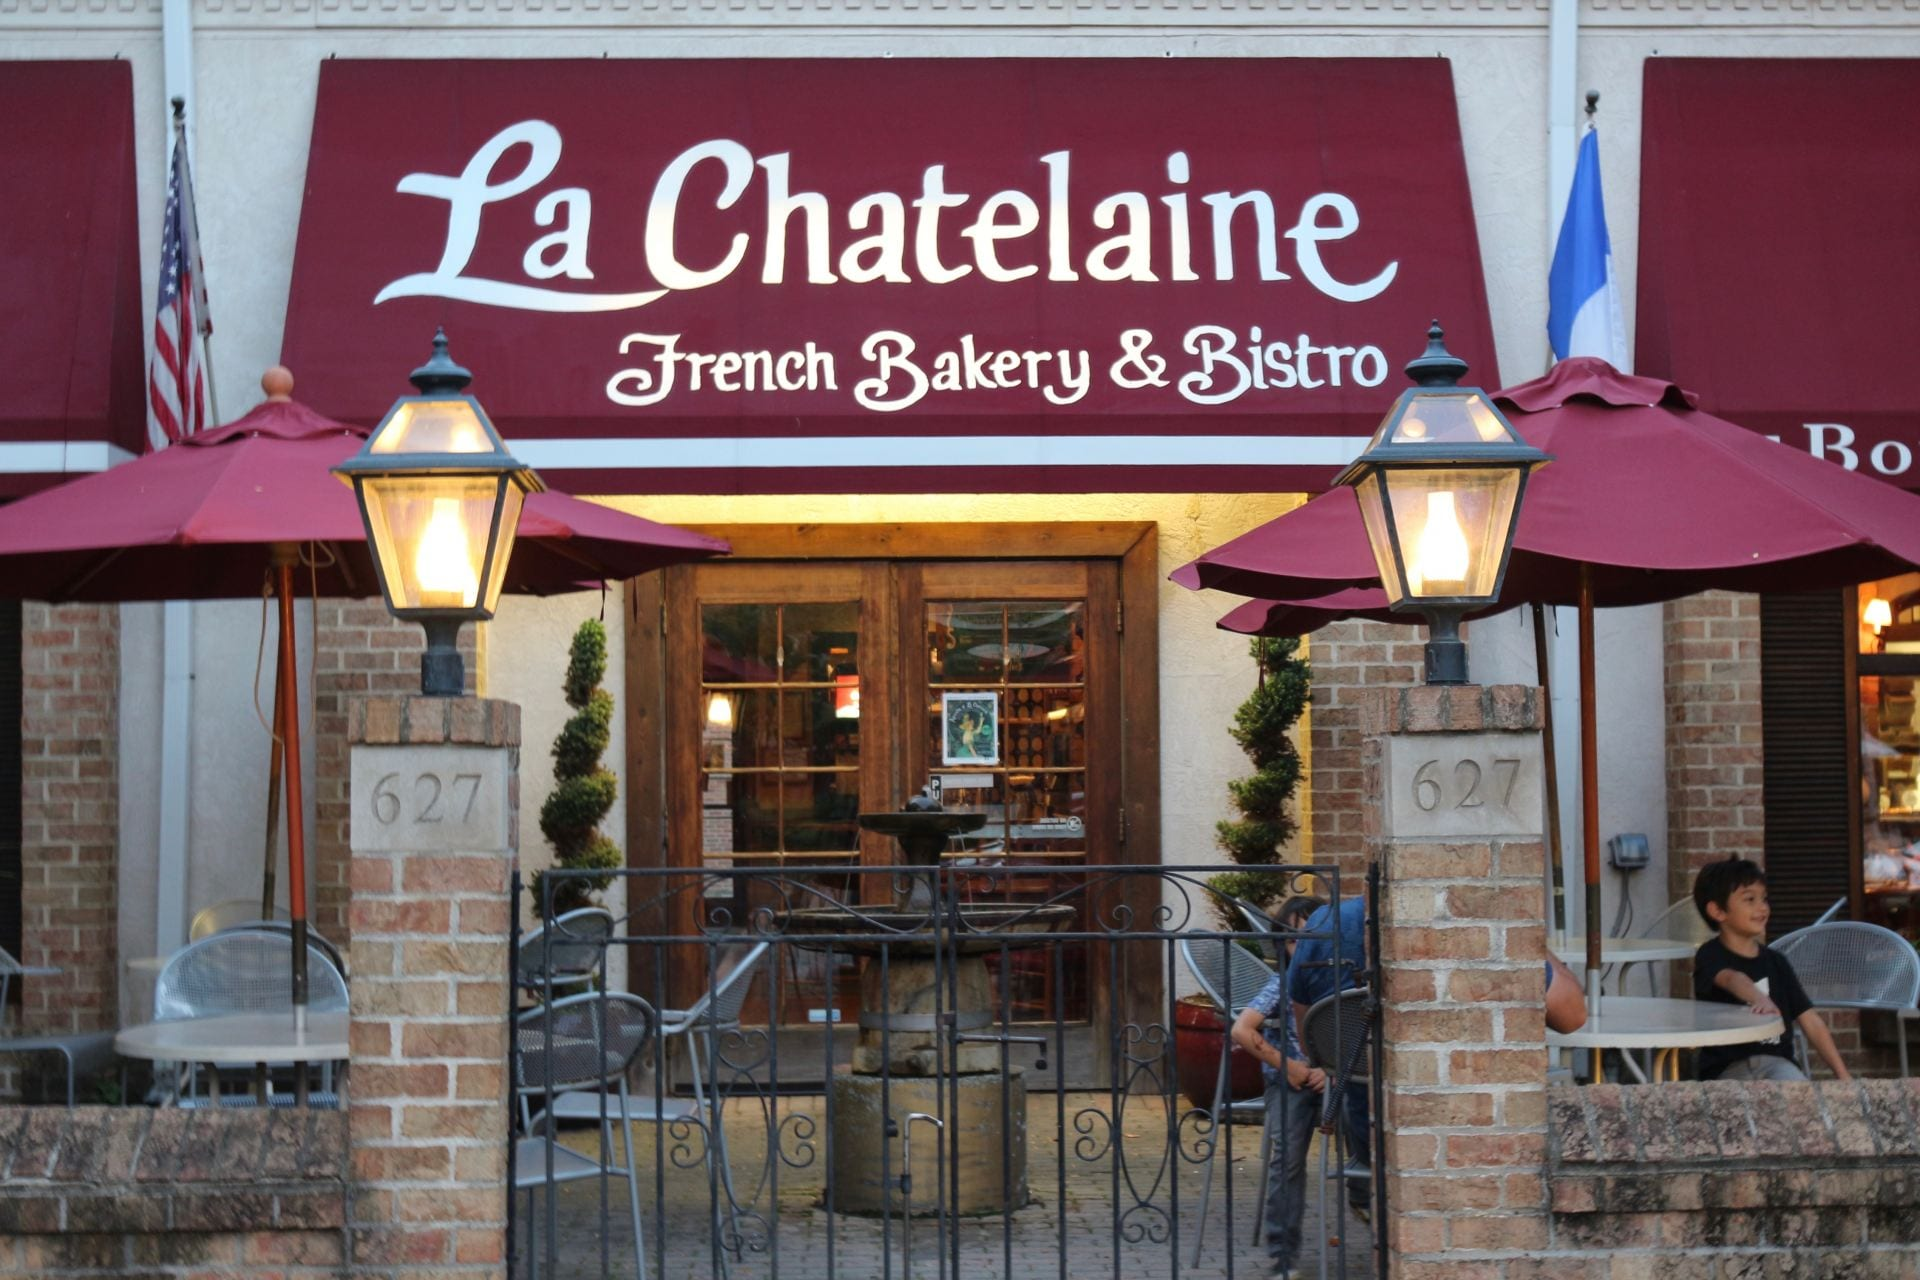 La Châtelaine Is A French Bakery And Bistro Located At 627 High St Columbus Oh Credit Tristain Relet Werkmeister Lantern Reporter